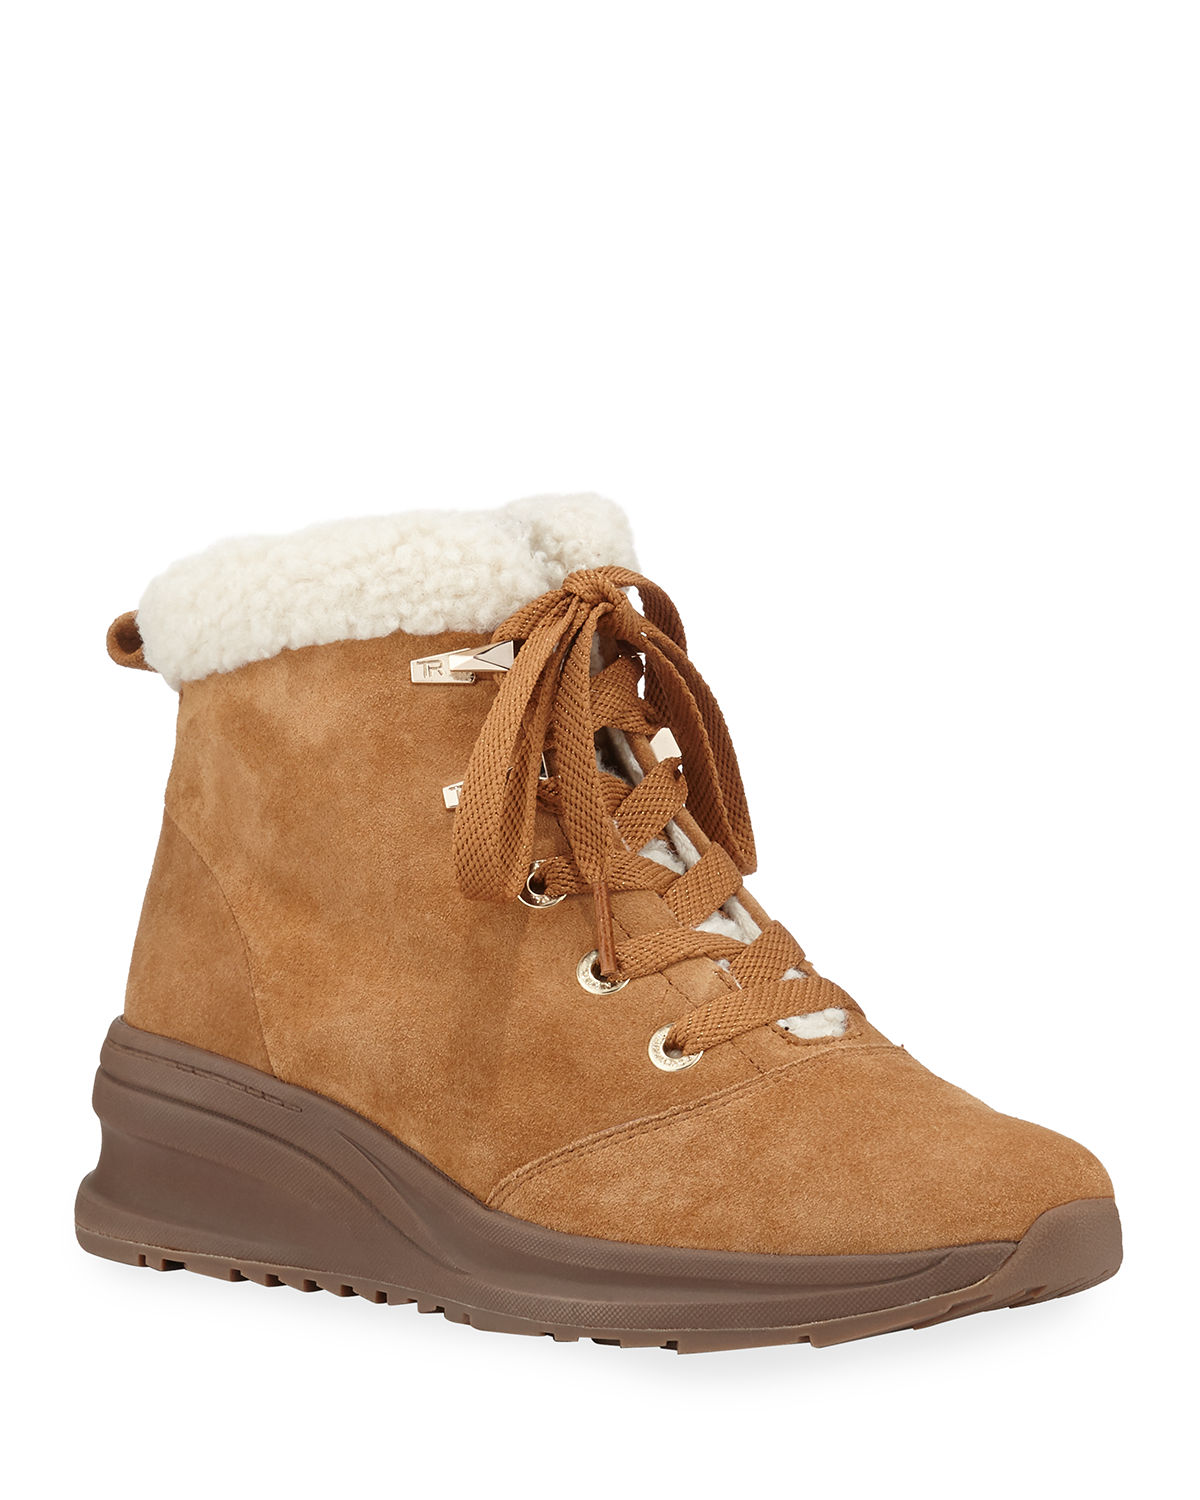 Zahara Weatherproof Booties